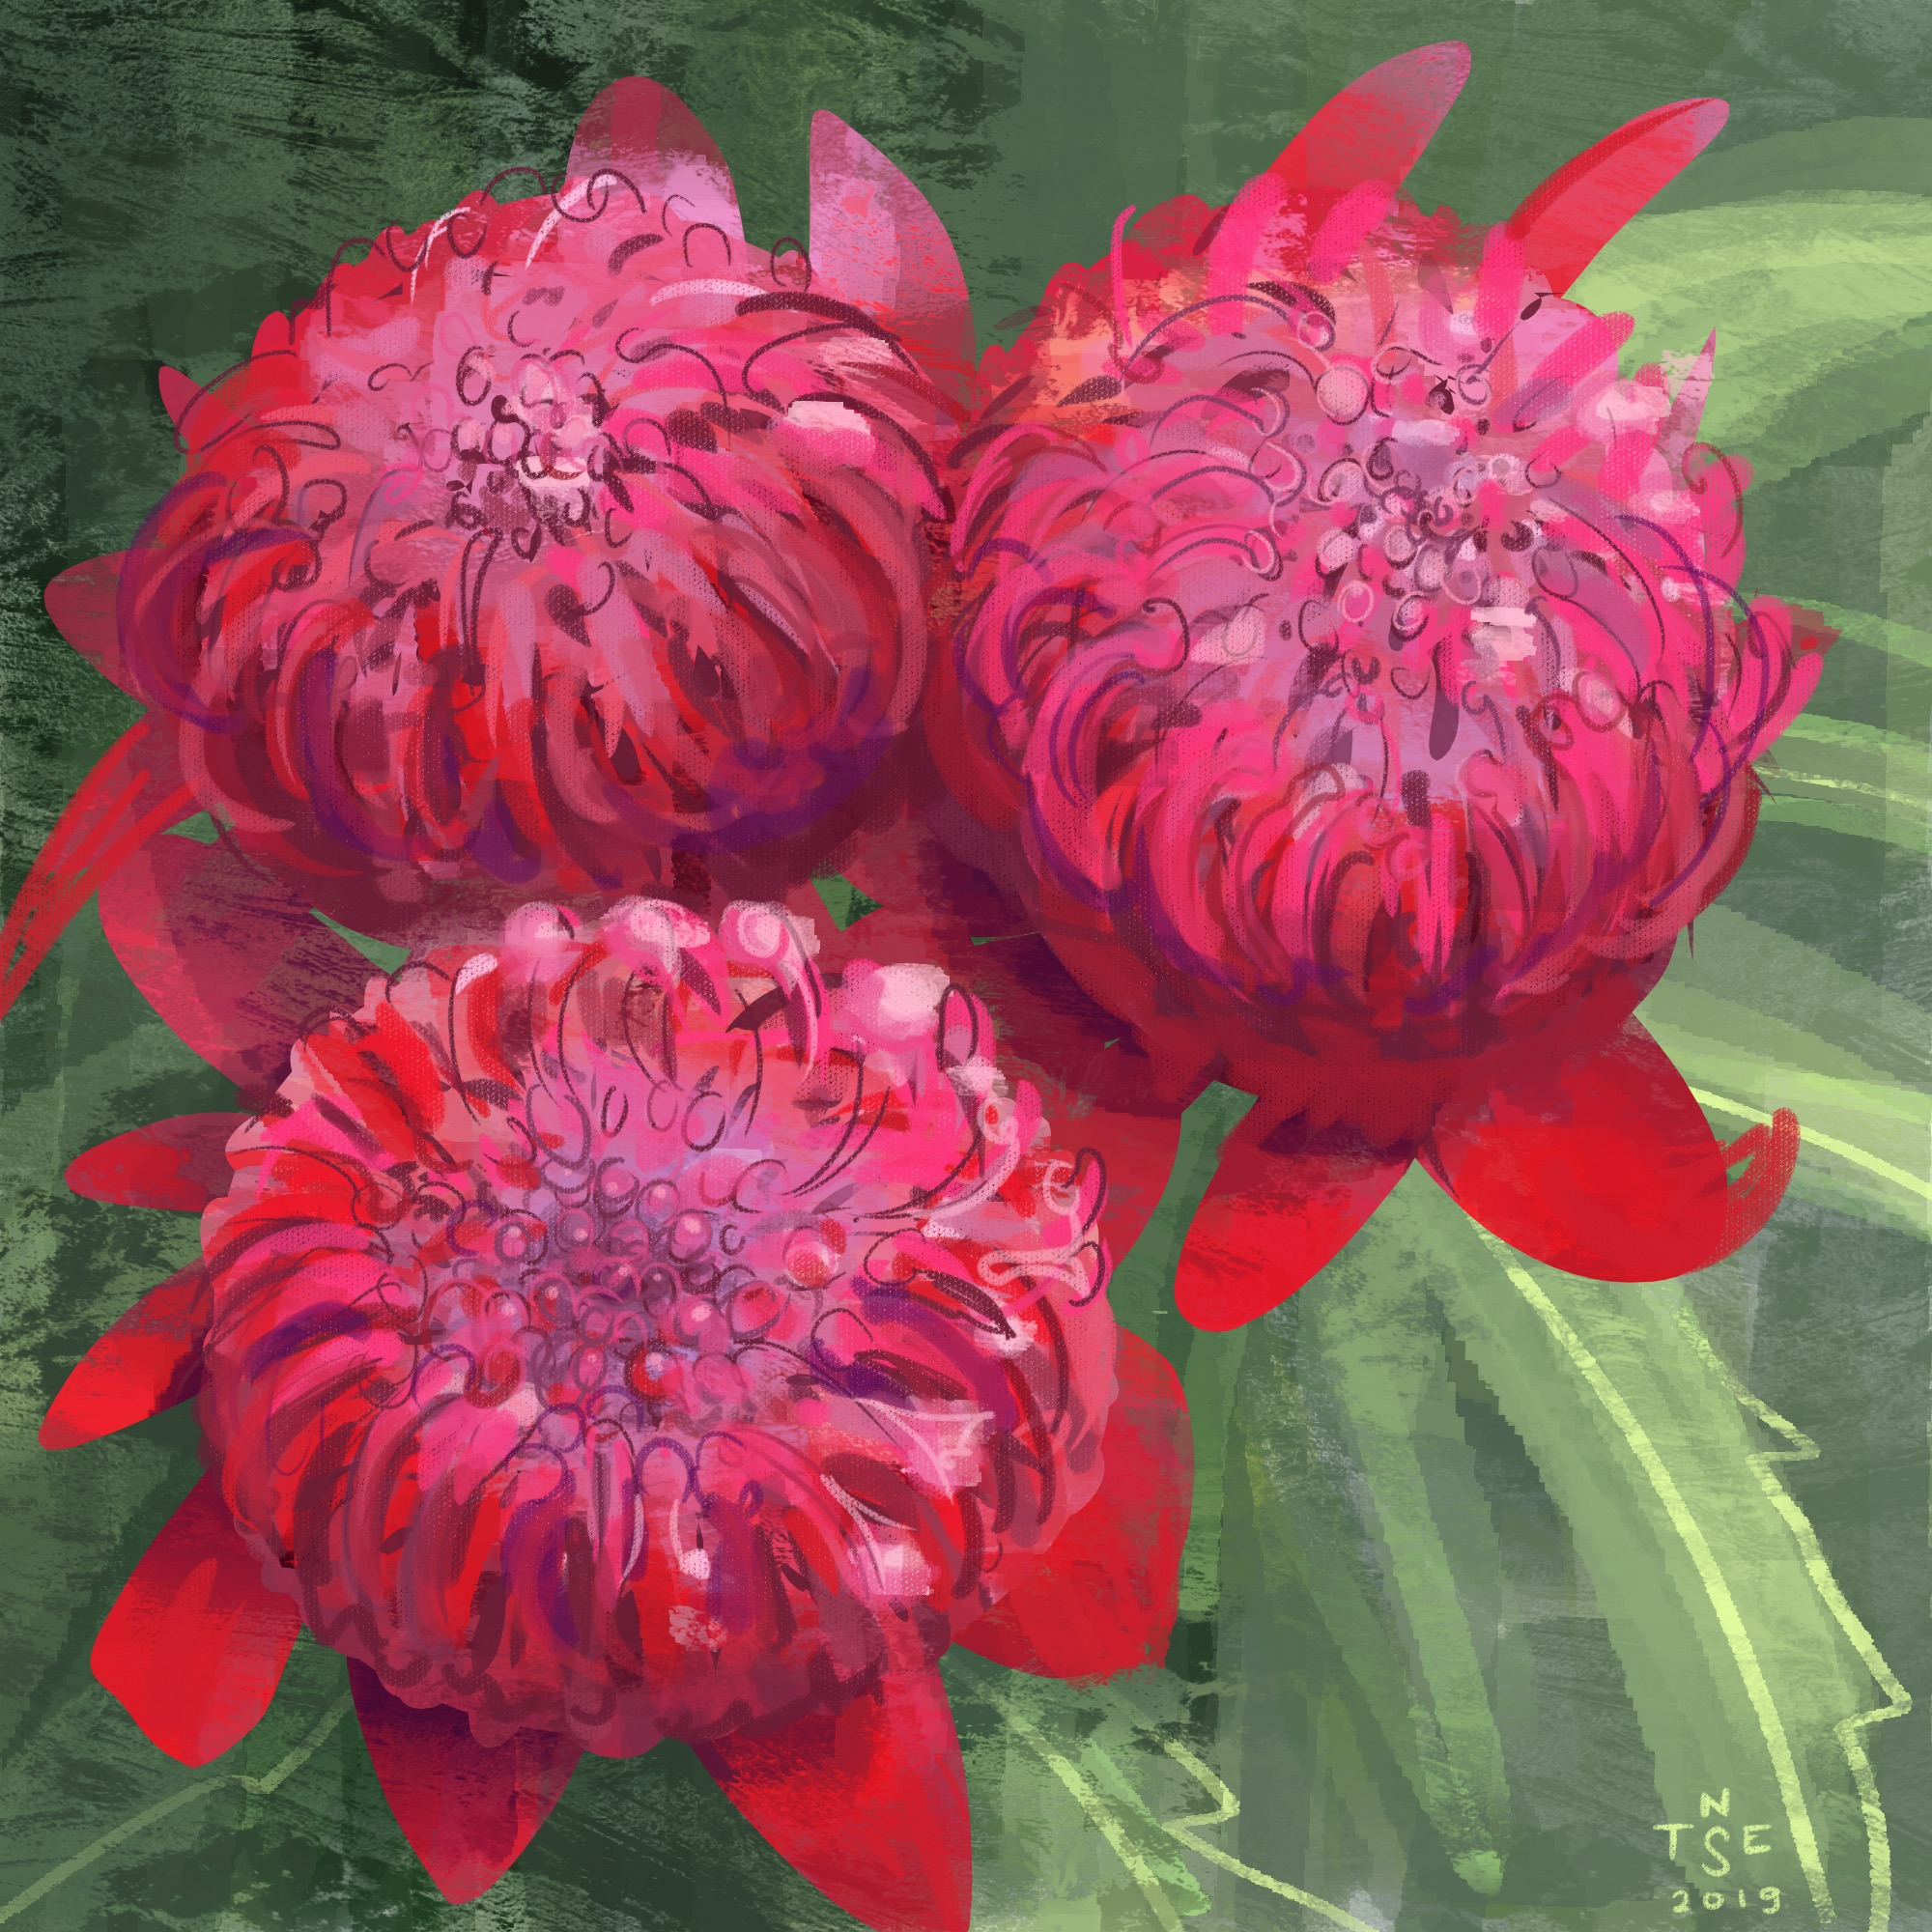 Painting: Waratah Flower + Timelapse Video